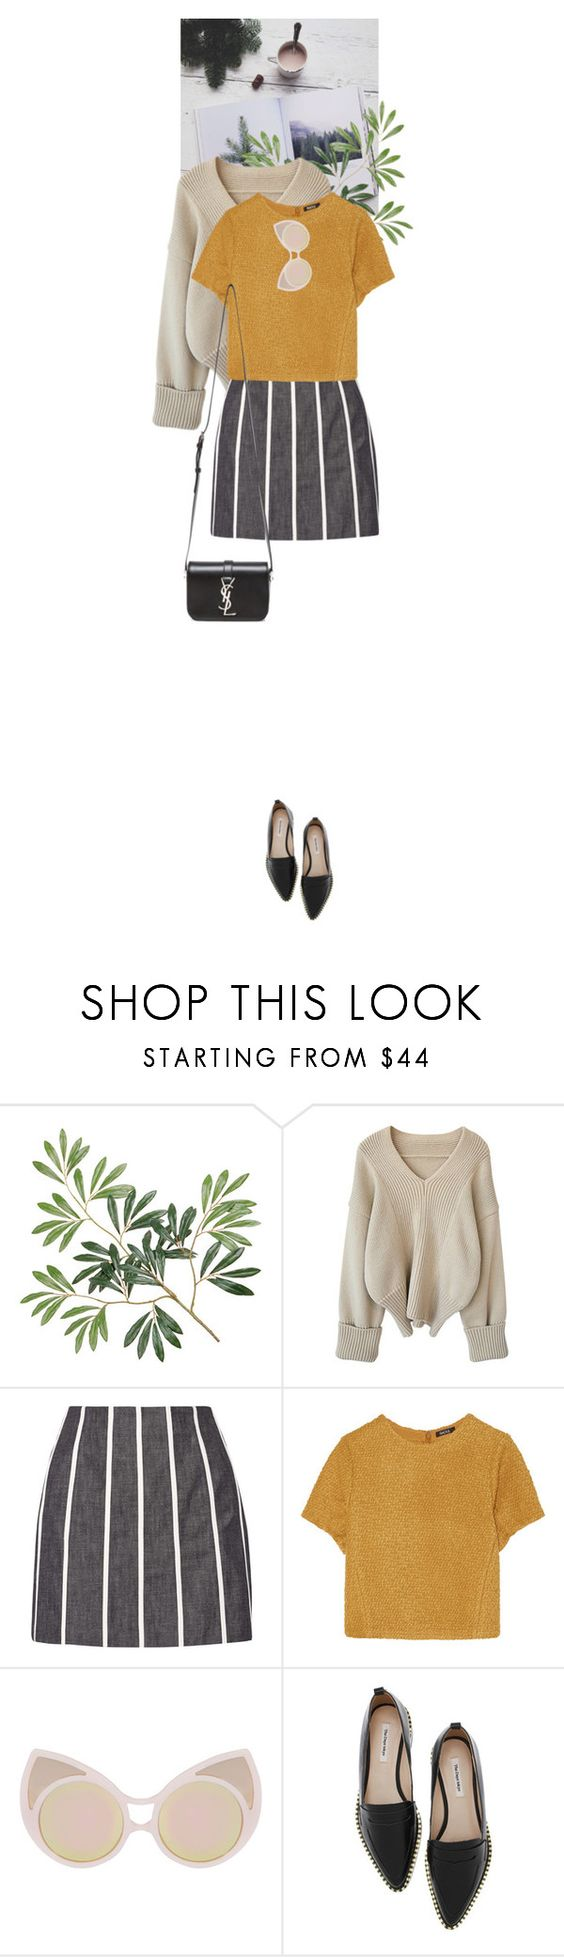 """""""About You"""" by dancingwithyou ❤ liked on Polyvore featuring dVb Victoria Beckham, Raoul, Linda Farrow and Yves Saint Laurent"""